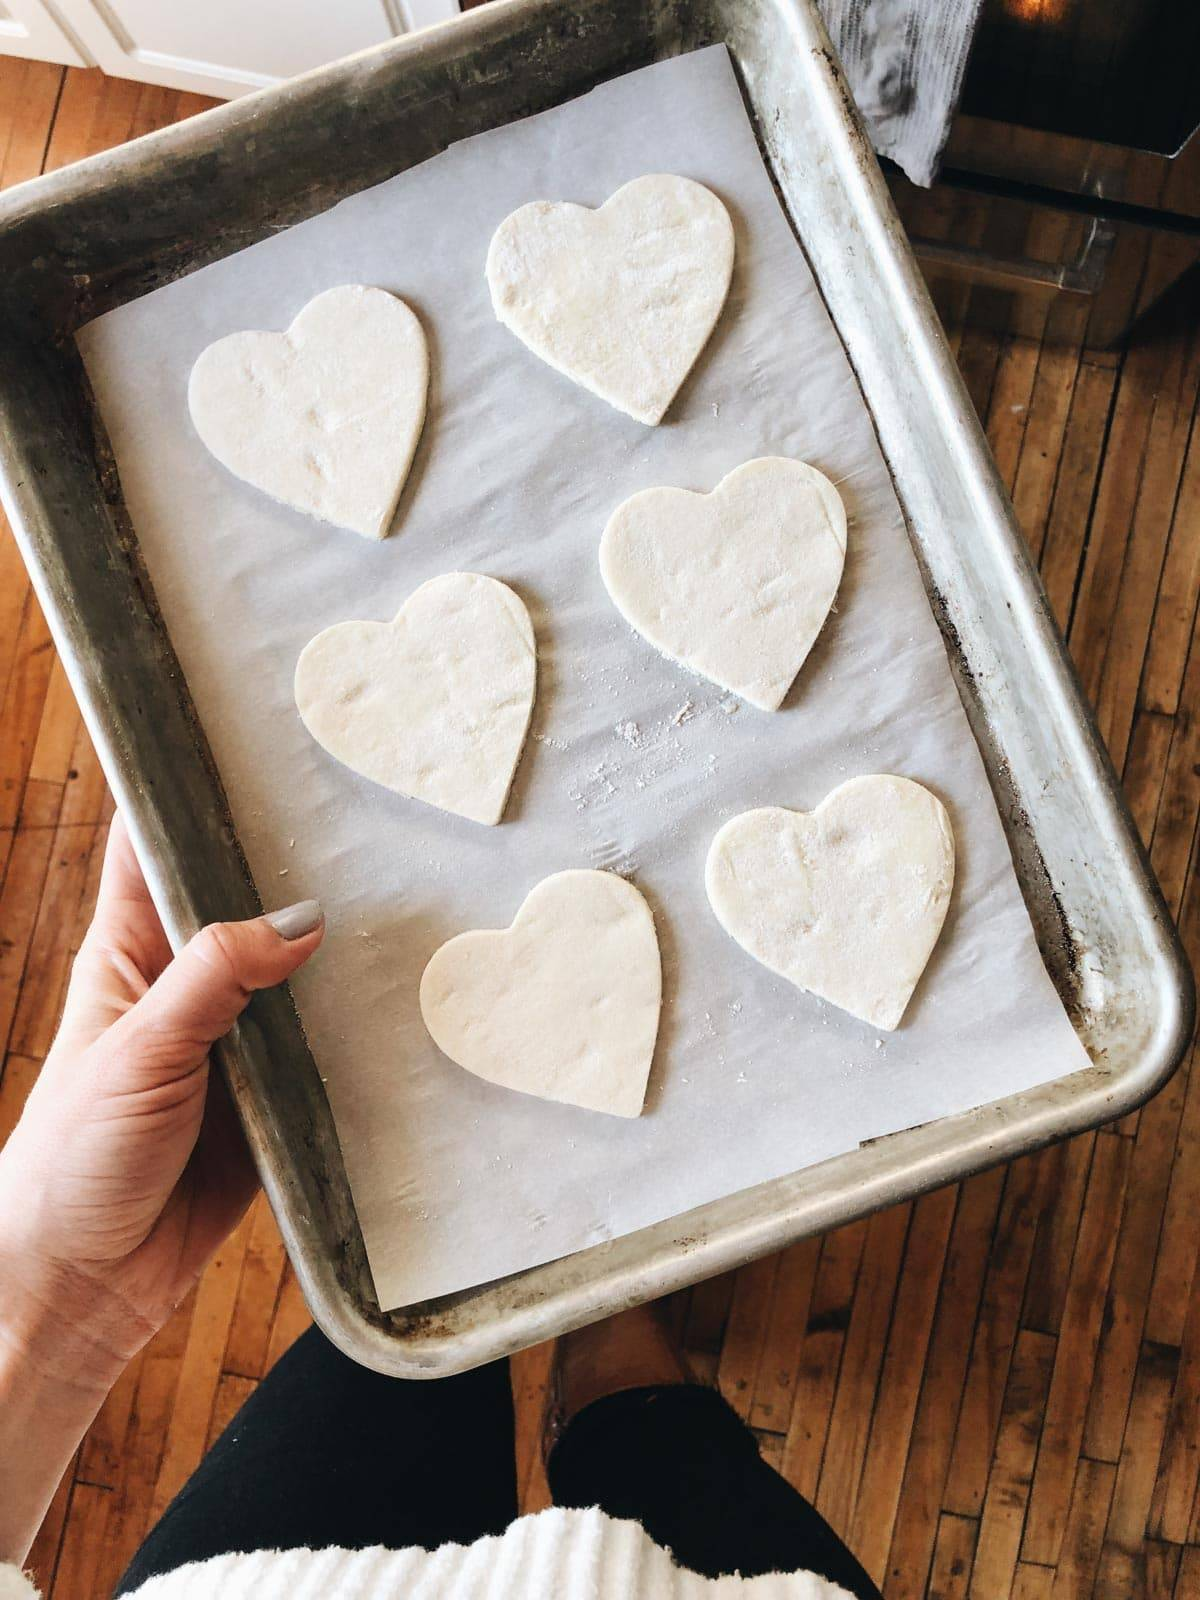 Puff pastry in heart shapes on pan before baking.